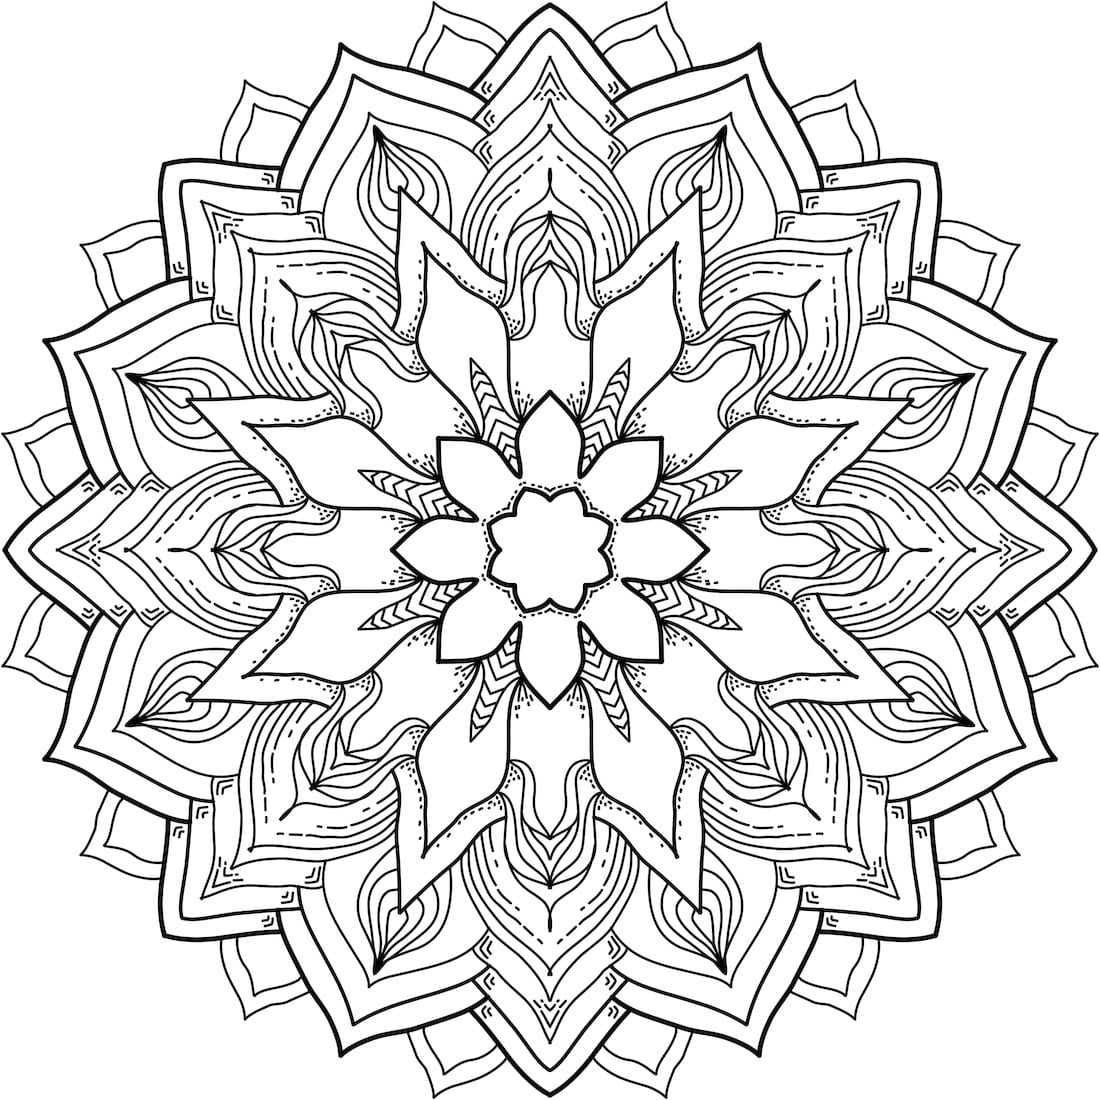 1100x1100 Best Of Flower Mandala Coloring Pages Gallery Printable Coloring